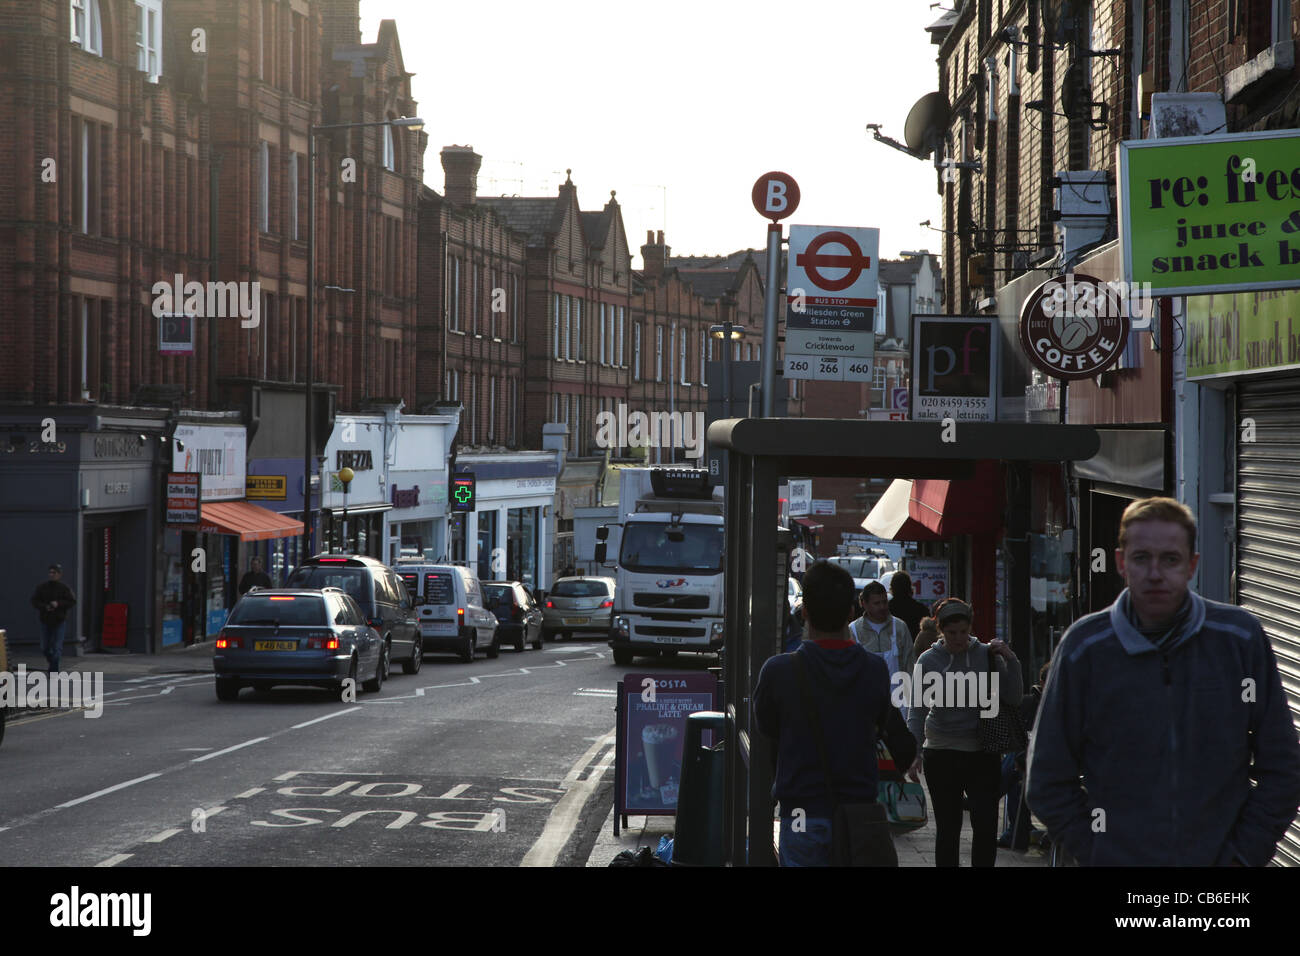 Willesden Green shops and bus stop outside the Underground Station - Stock Image